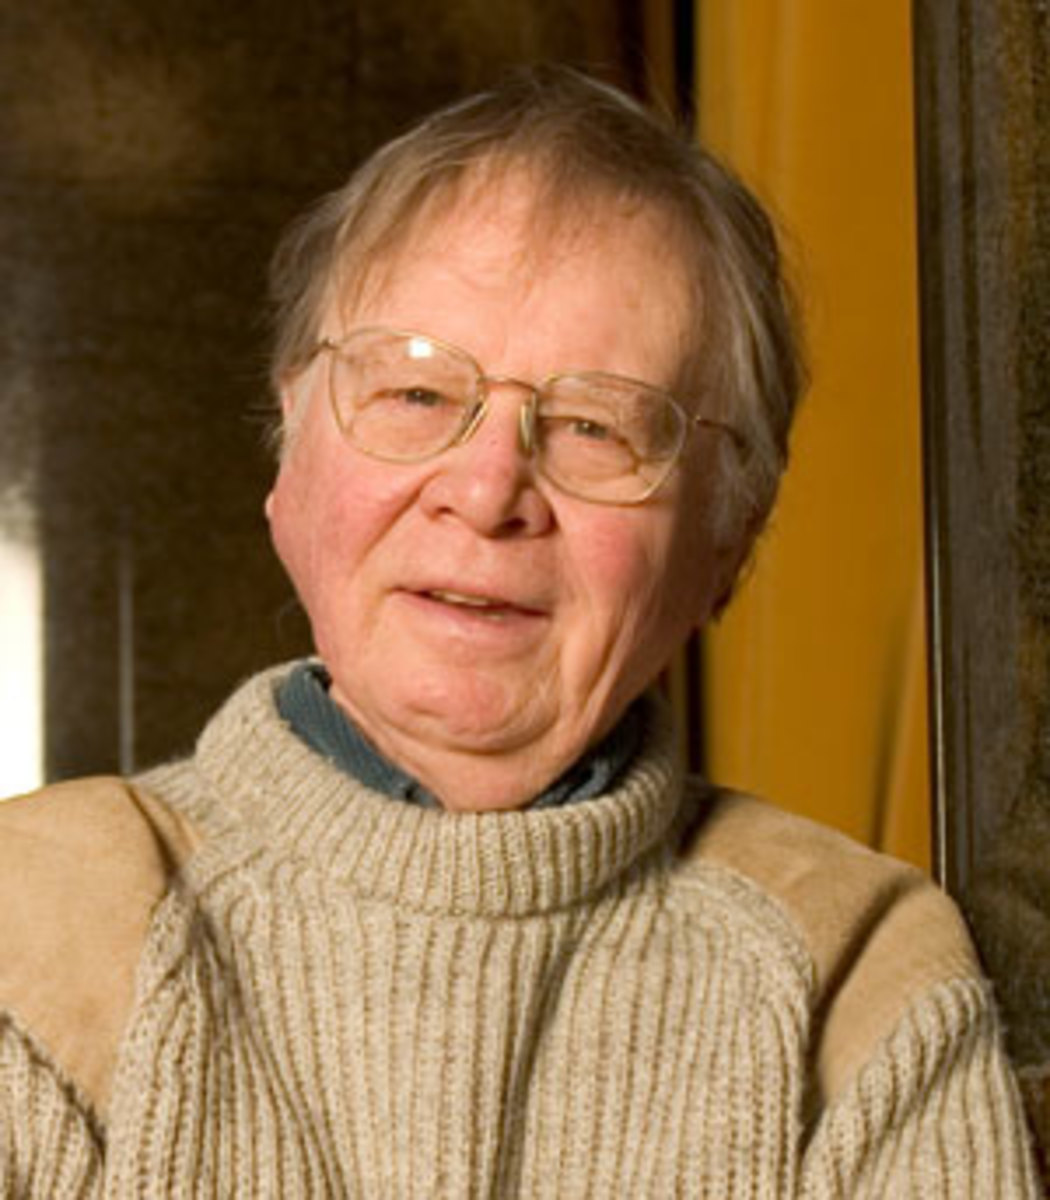 """Wally"" Broecker, Newberry Professor of Geology, Lamont-Doherty Earth Observatory, Columbia University."